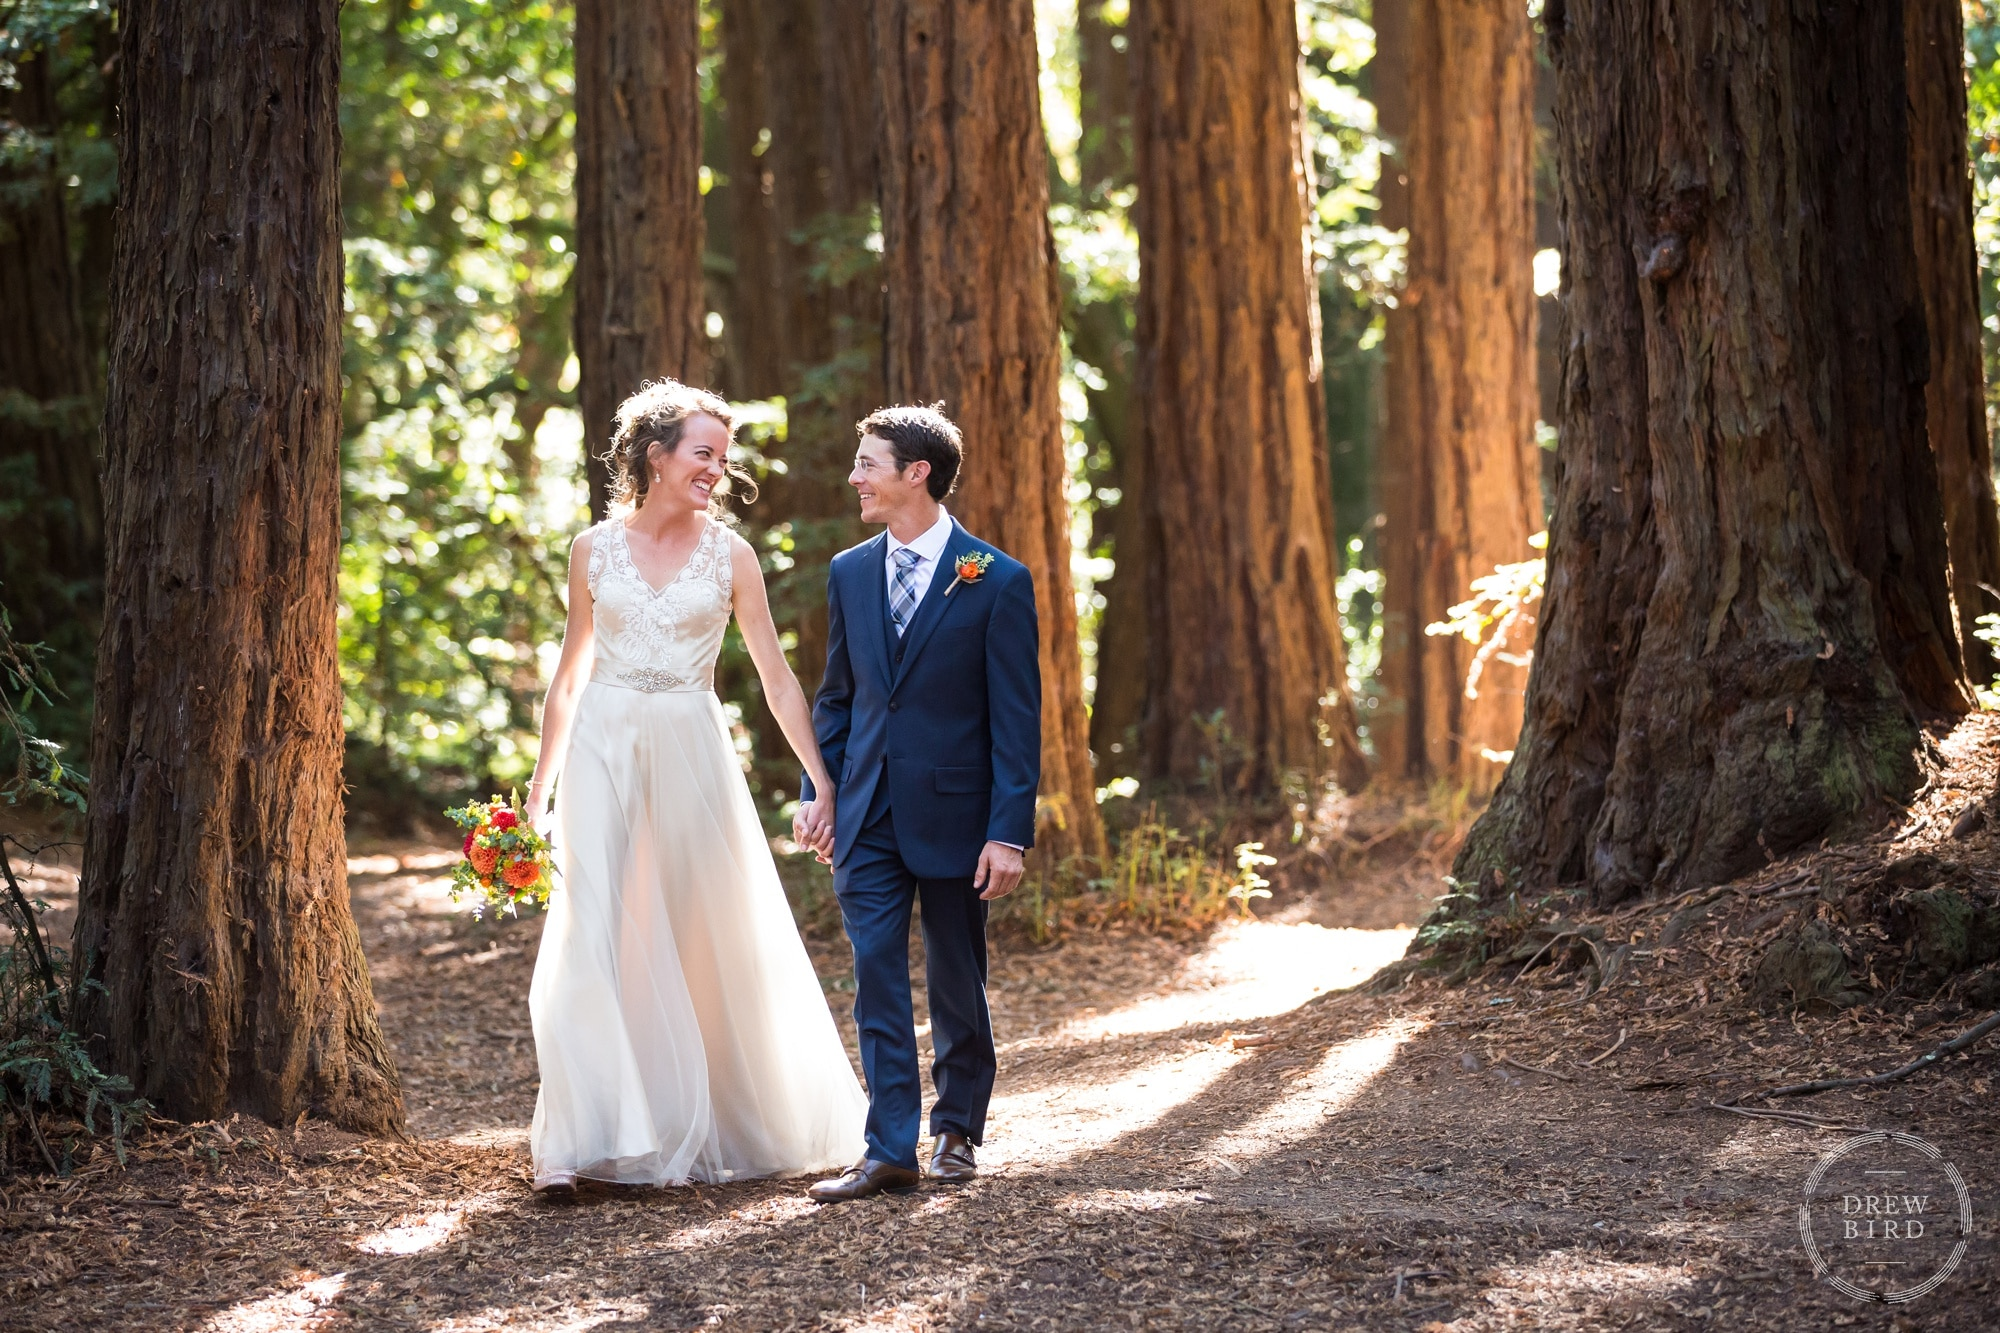 Bride and groom walking through a redwood forest with great light. Creative wedding portrait. Oakland California wedding photographer Drew Bird.